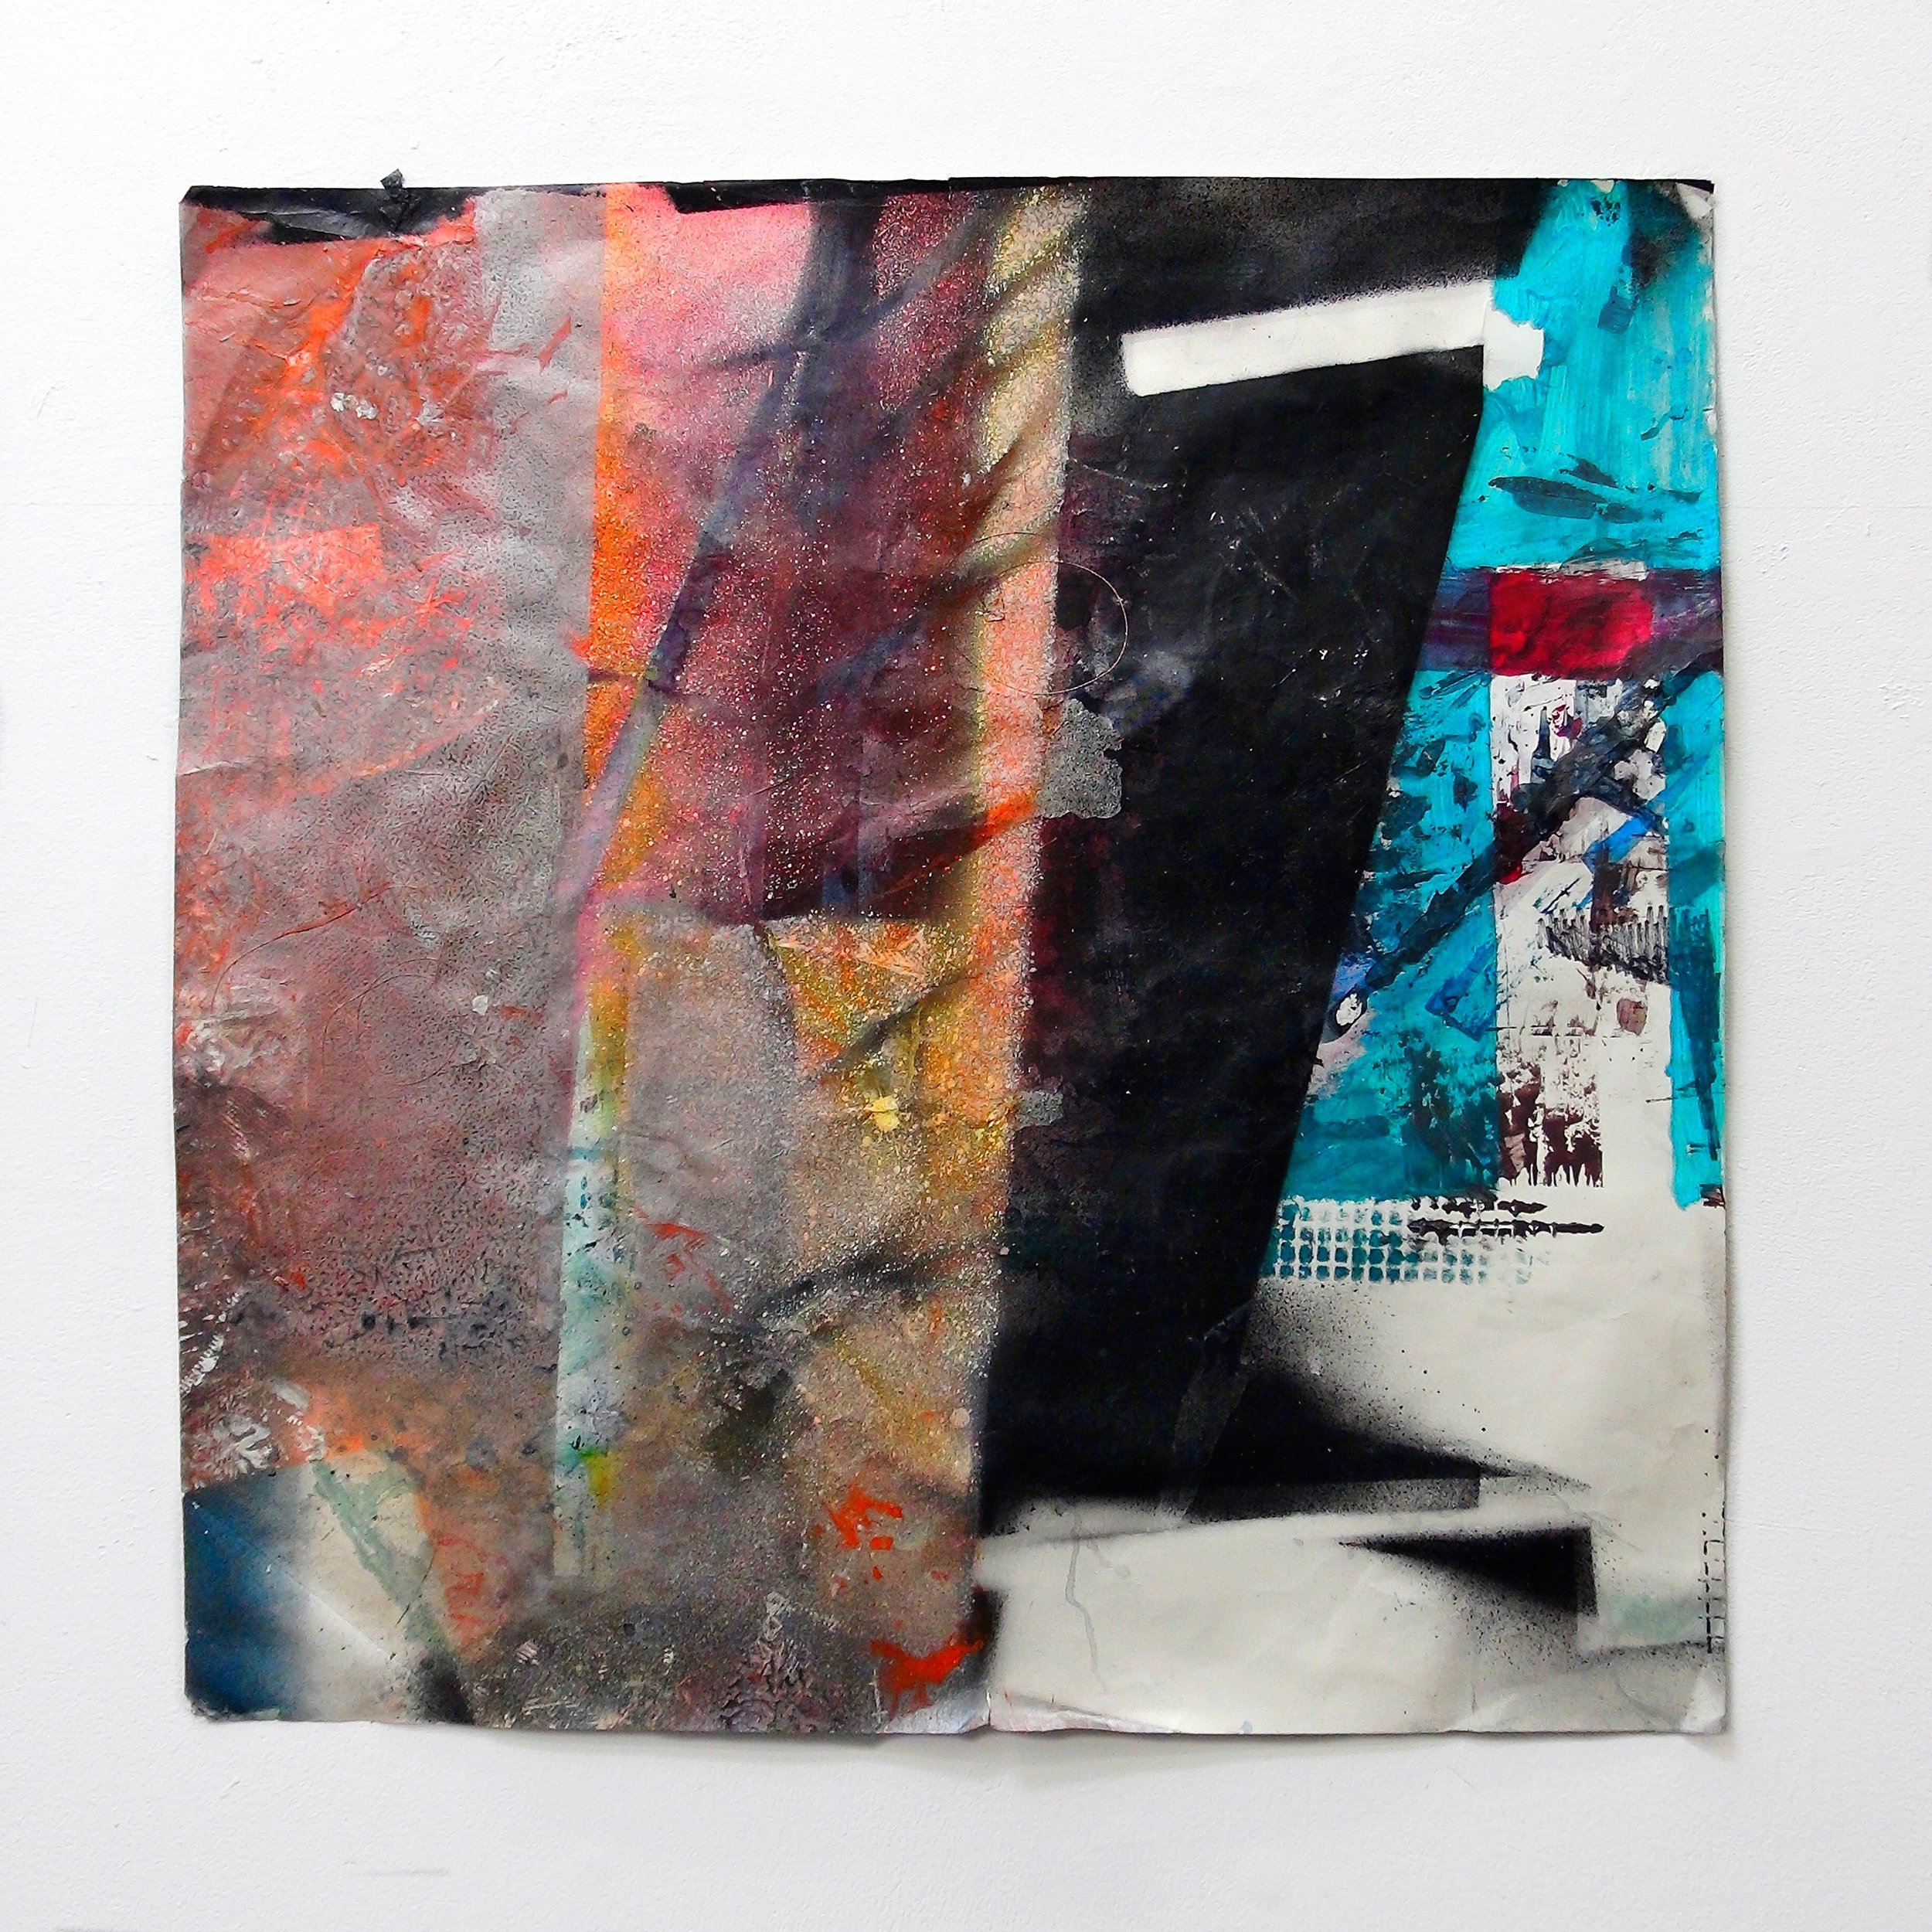 IAIN MUIRHEAD   1618  , 2015-2016. Airborne pigment, acrylic binder, ultraviolet ink, smooth bristol paper, nylon monofilament. Paper: 36 x 36 inches.